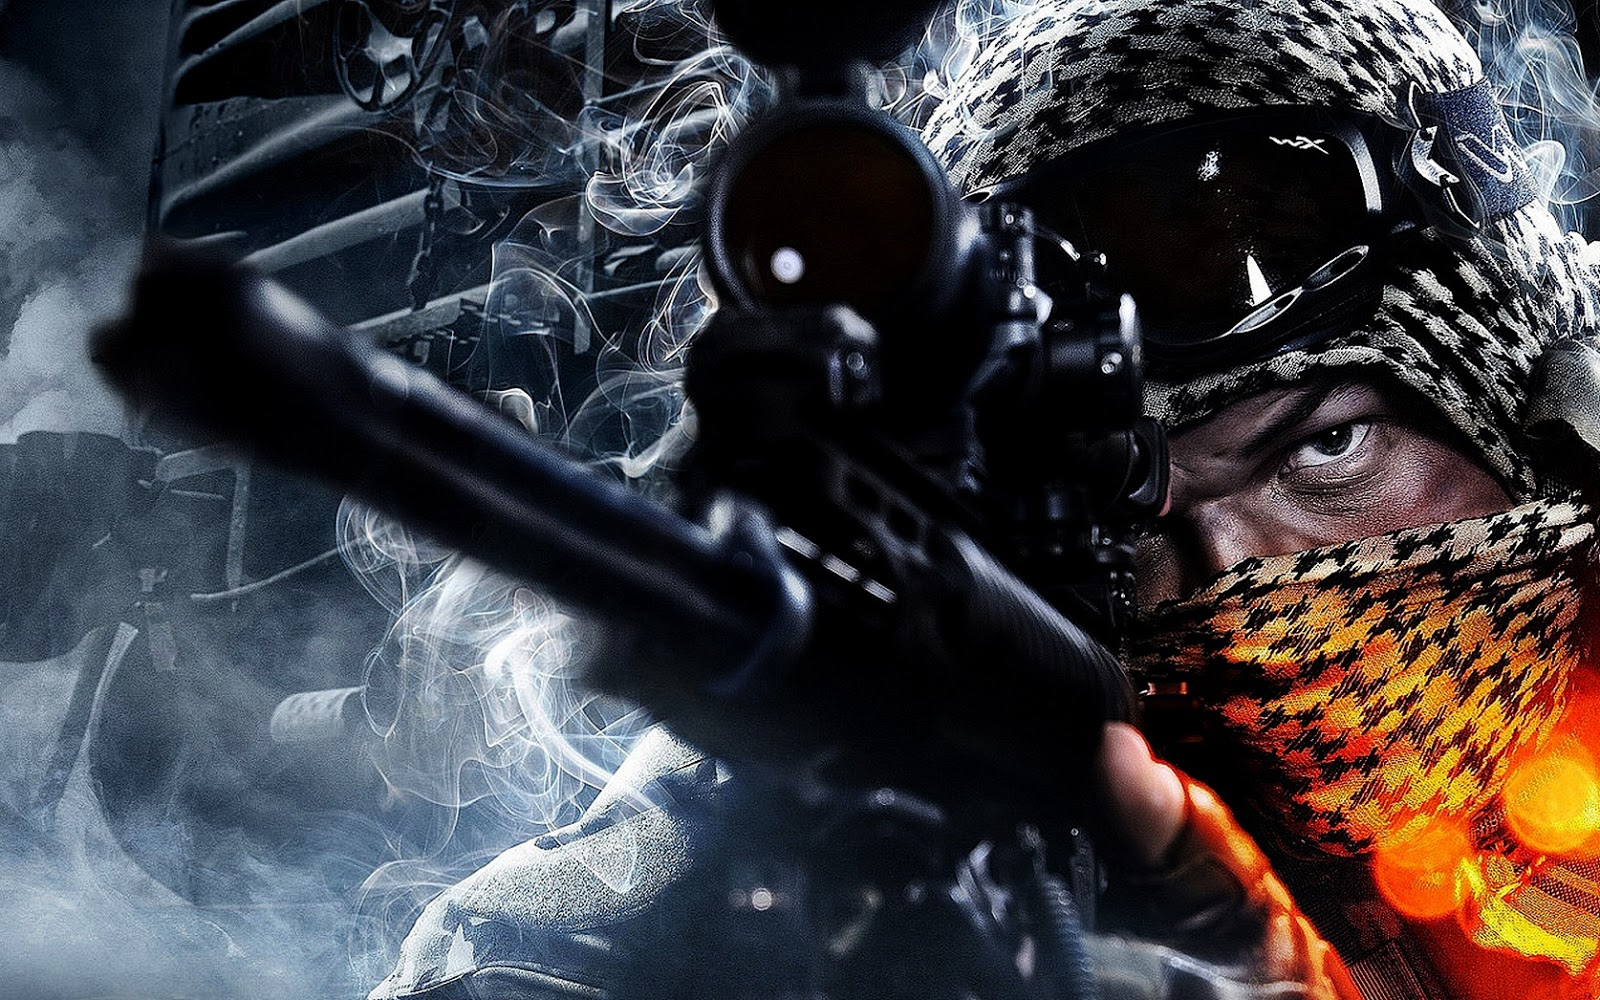 Best Sniper Wallpapers from Video Games Download Wallpapers in HD 1600x1000